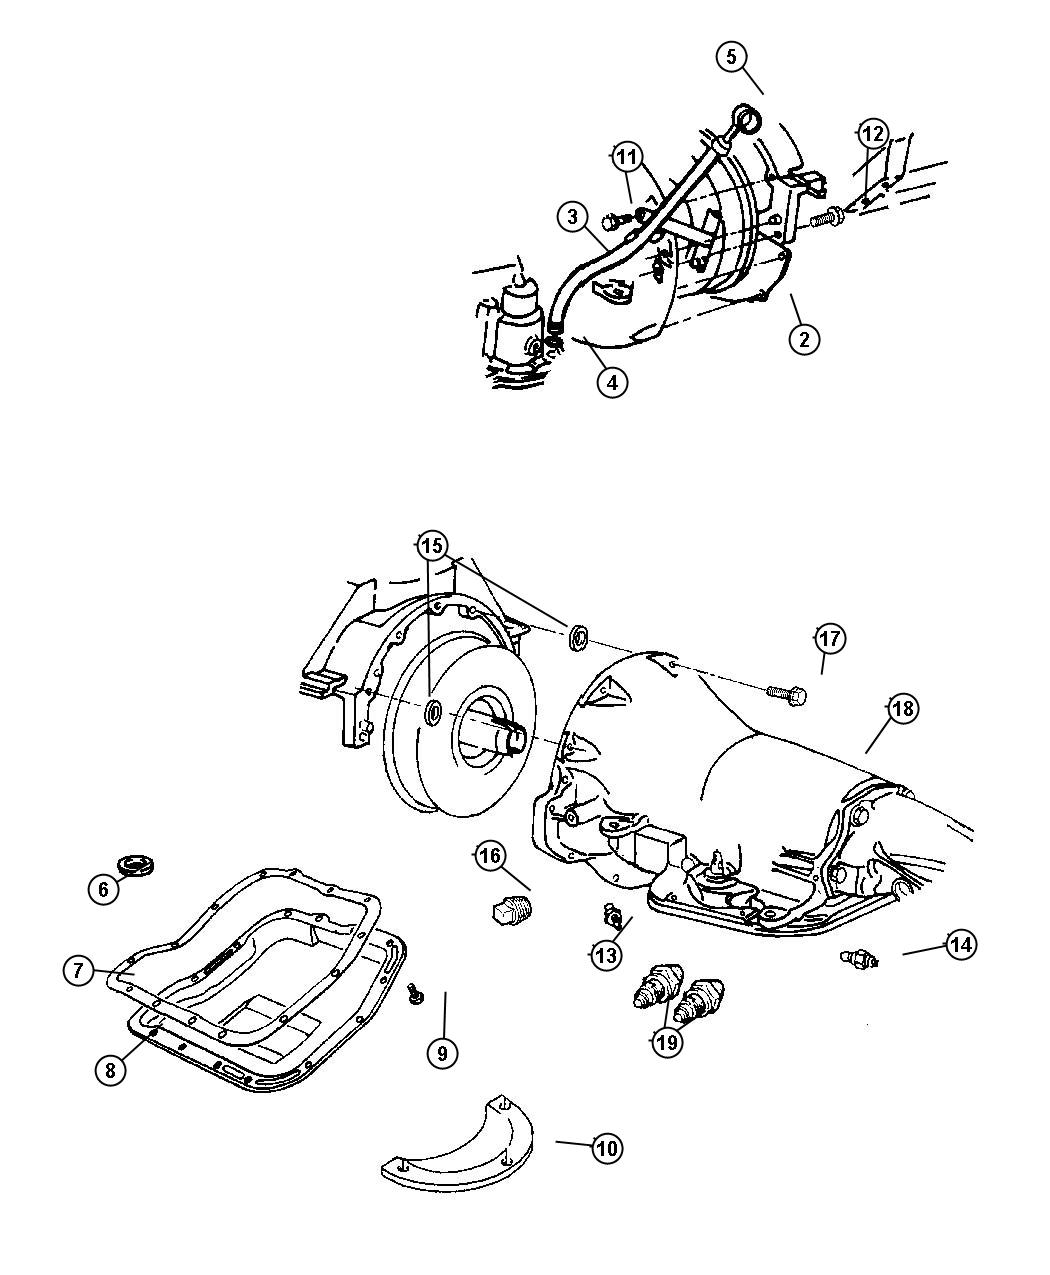 4l60e Transmission Diagram Breakdown. Diagram. Auto Wiring